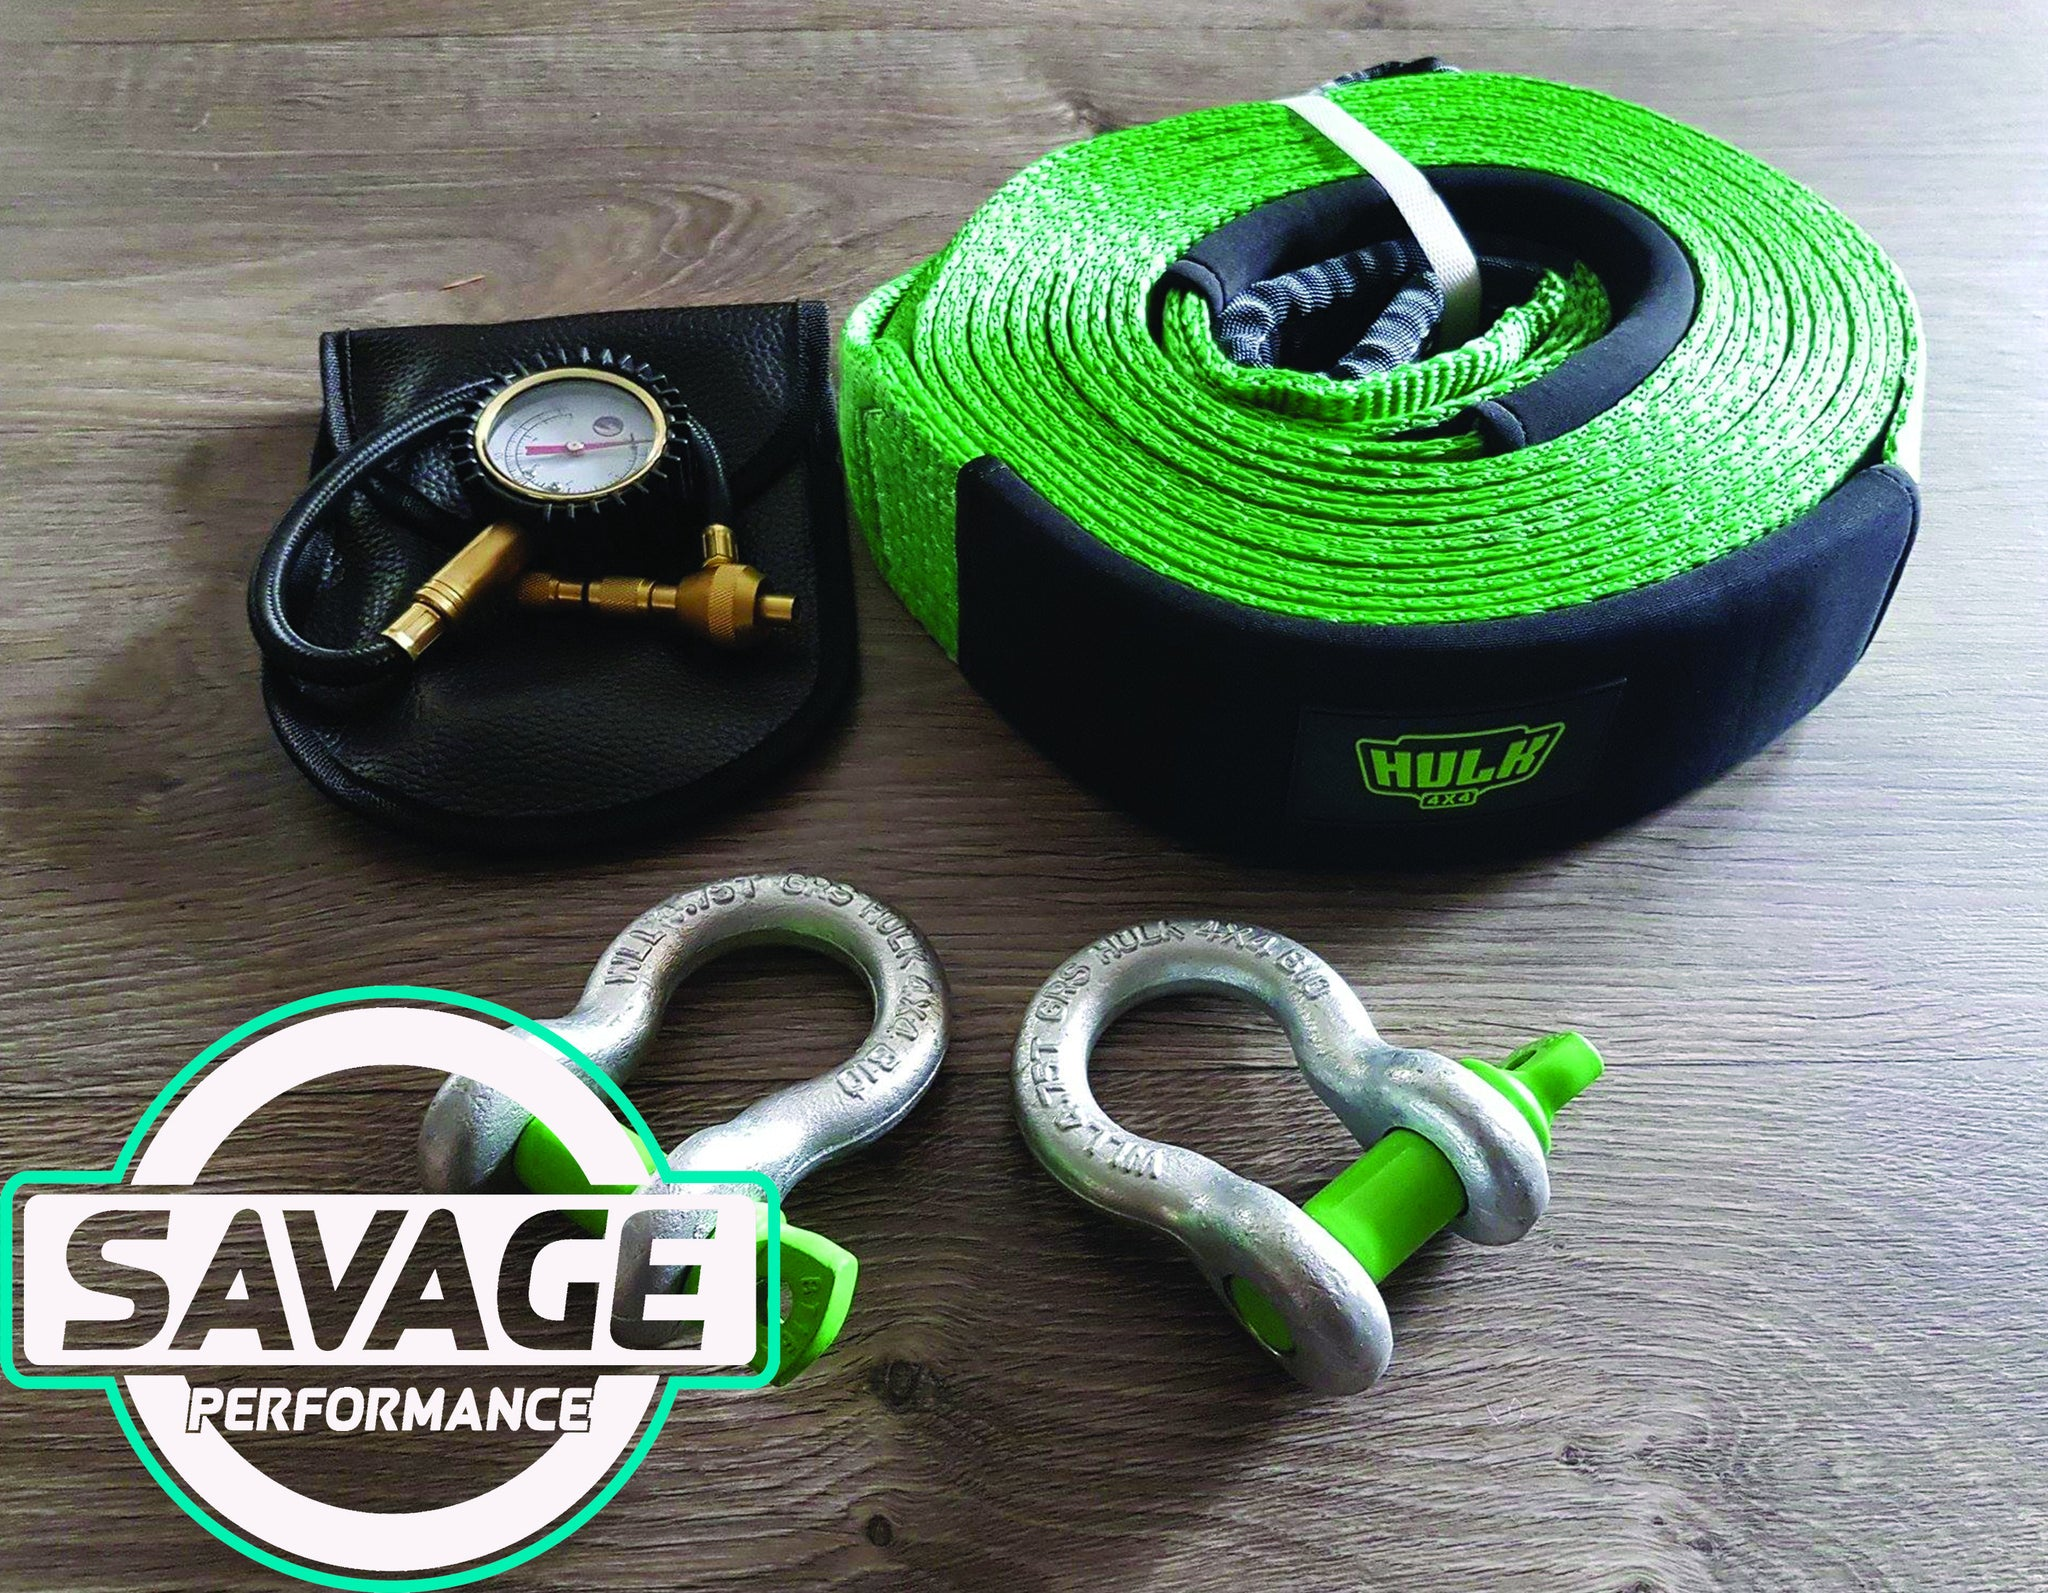 HULK 4x4 Essentials Combo Pack *Savage Performance*